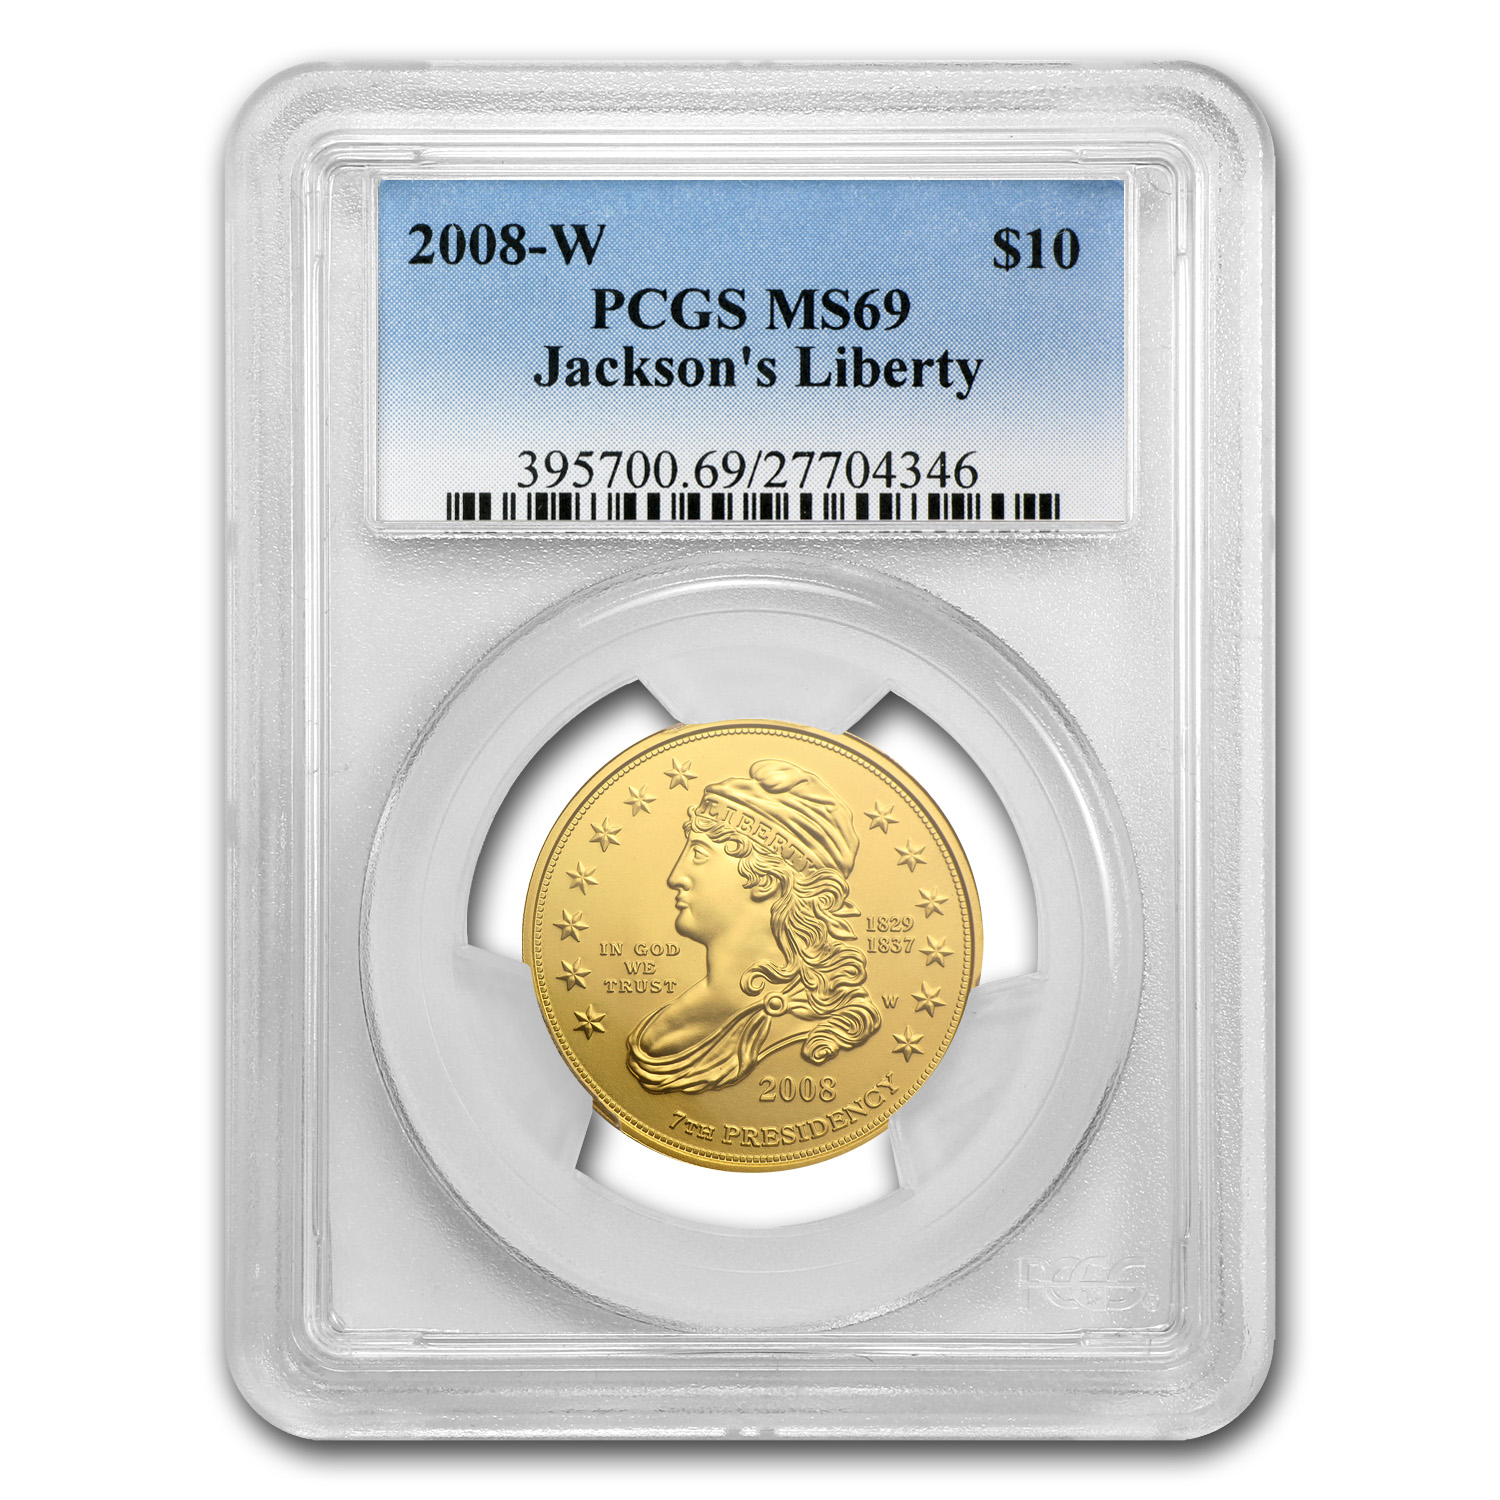 2008-W 1/2 oz Gold Jackson's Liberty MS-69 PCGS